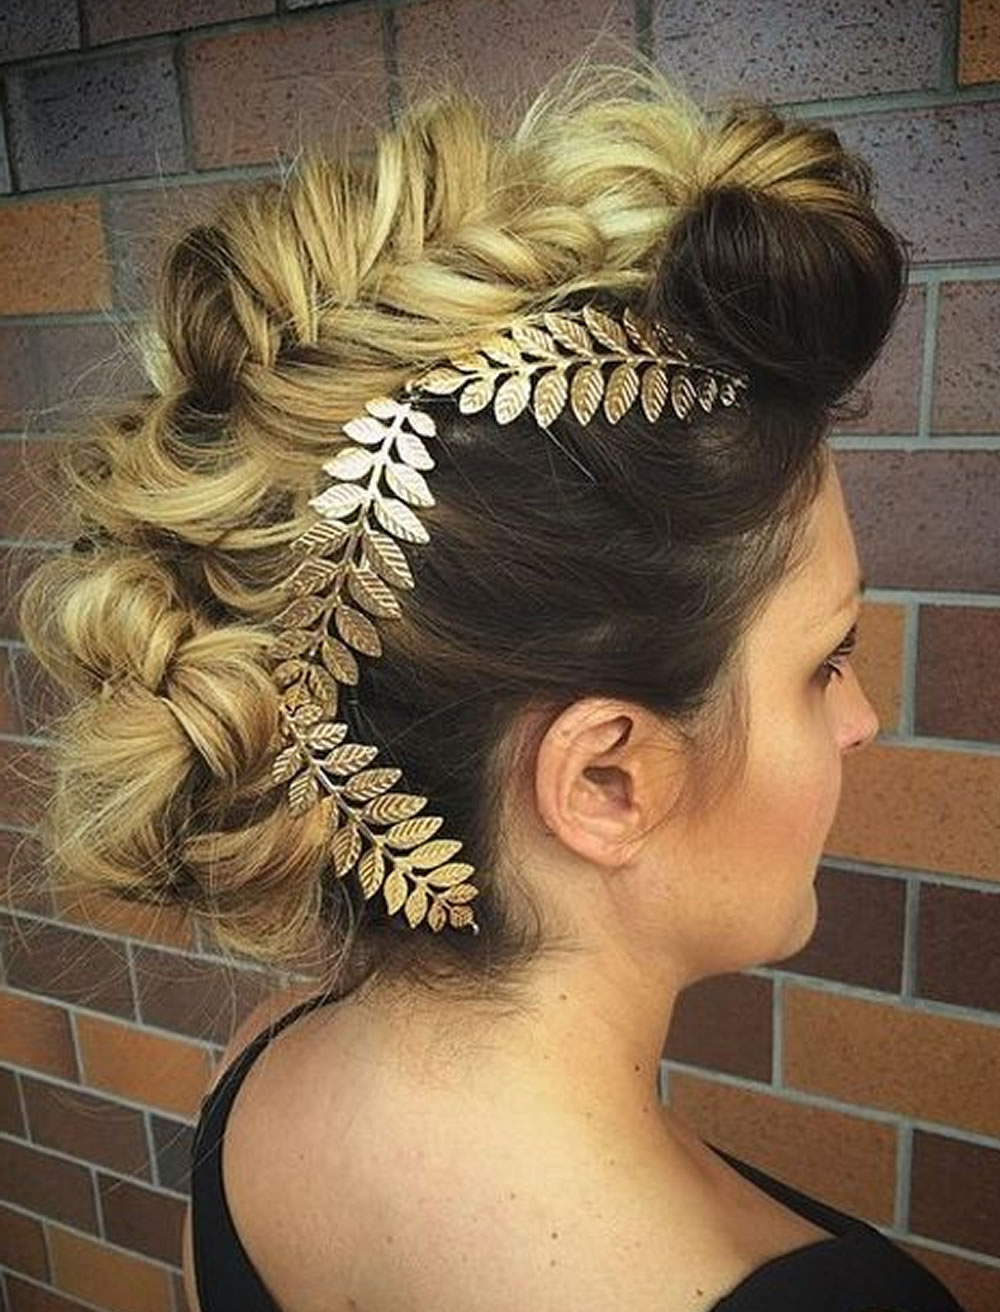 30 Glamorous Braided Mohawk Hairstyles For Girls And Women – Page 3 Pertaining To Current Glamorous Mohawk Updo Hairstyles (View 2 of 20)